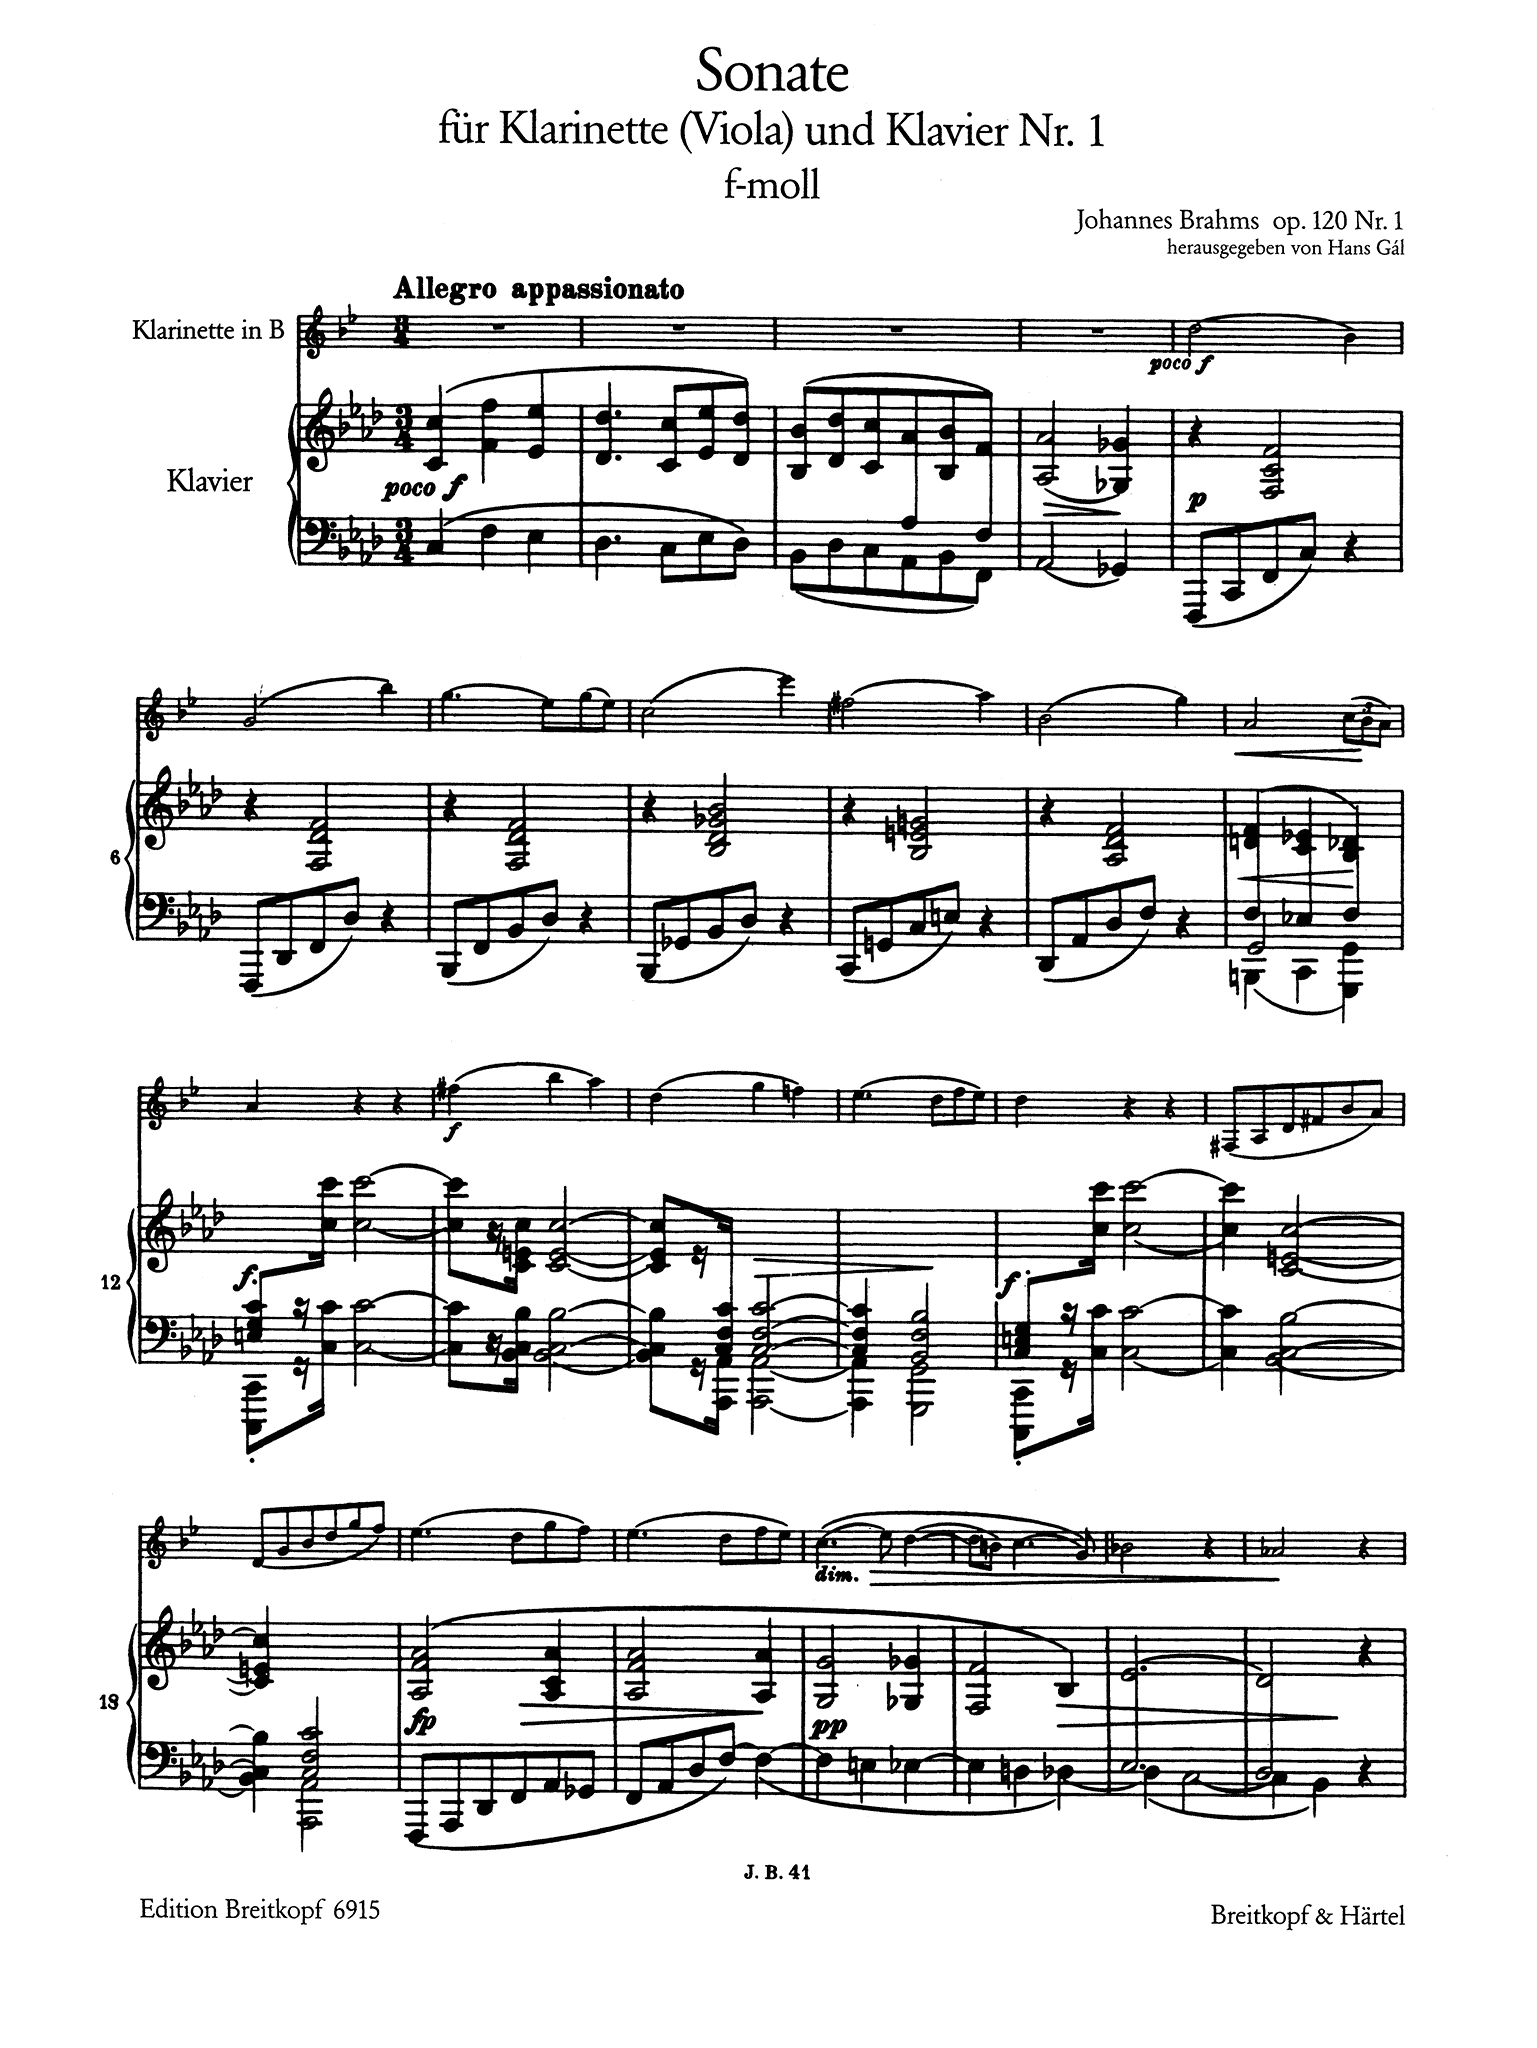 Sonata in F Minor, Op. 120 No. 1 - Movement 1